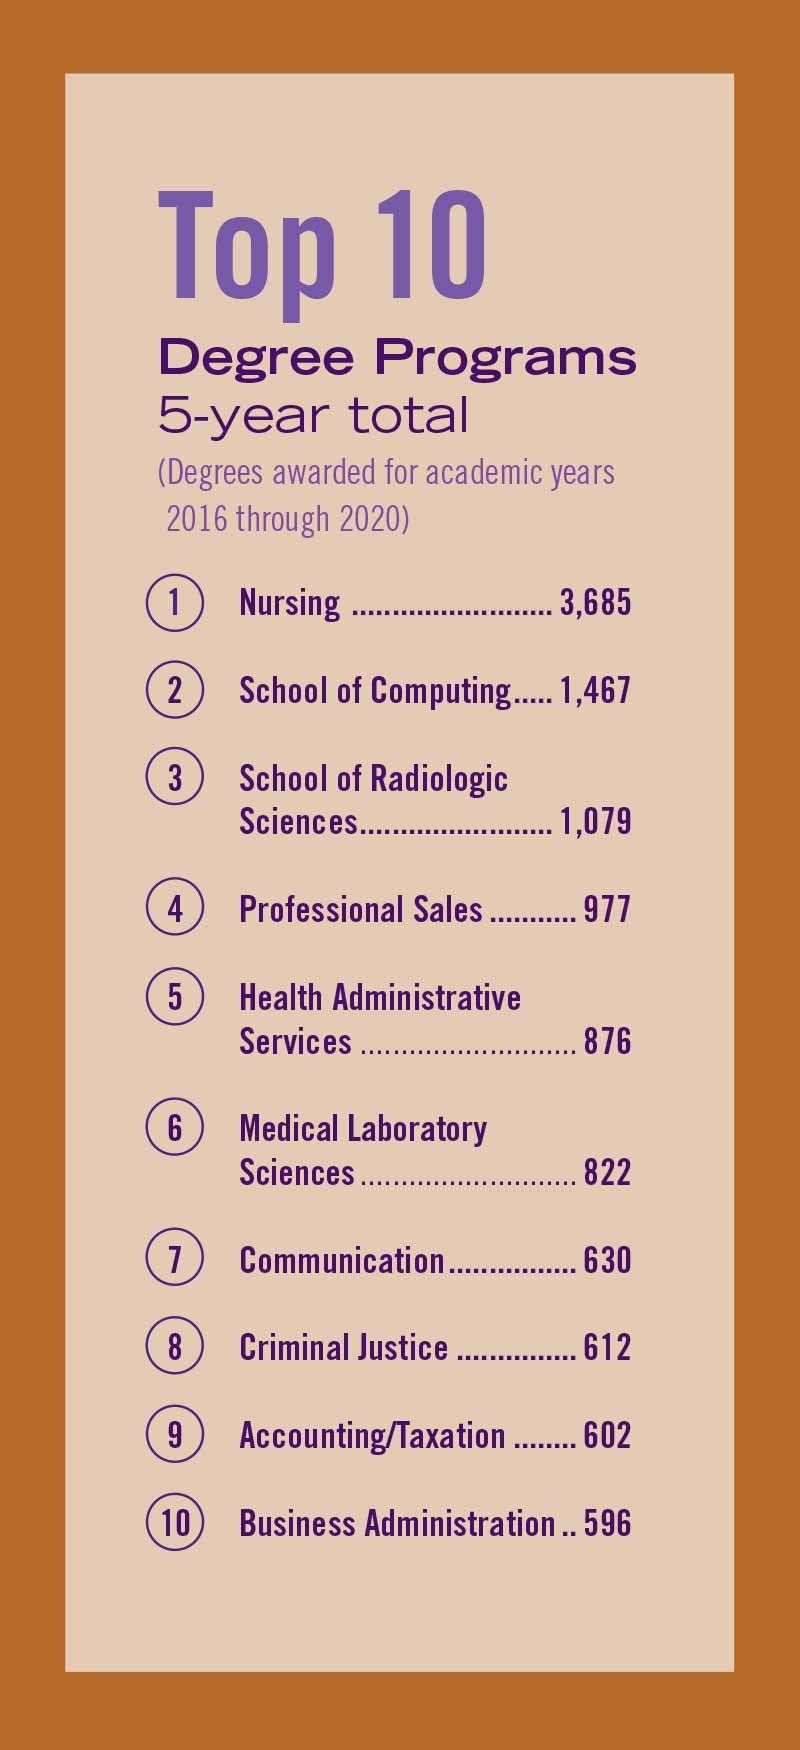 List of Weber State's top 10 degree programs awarded for academic years 2016 through 2020.